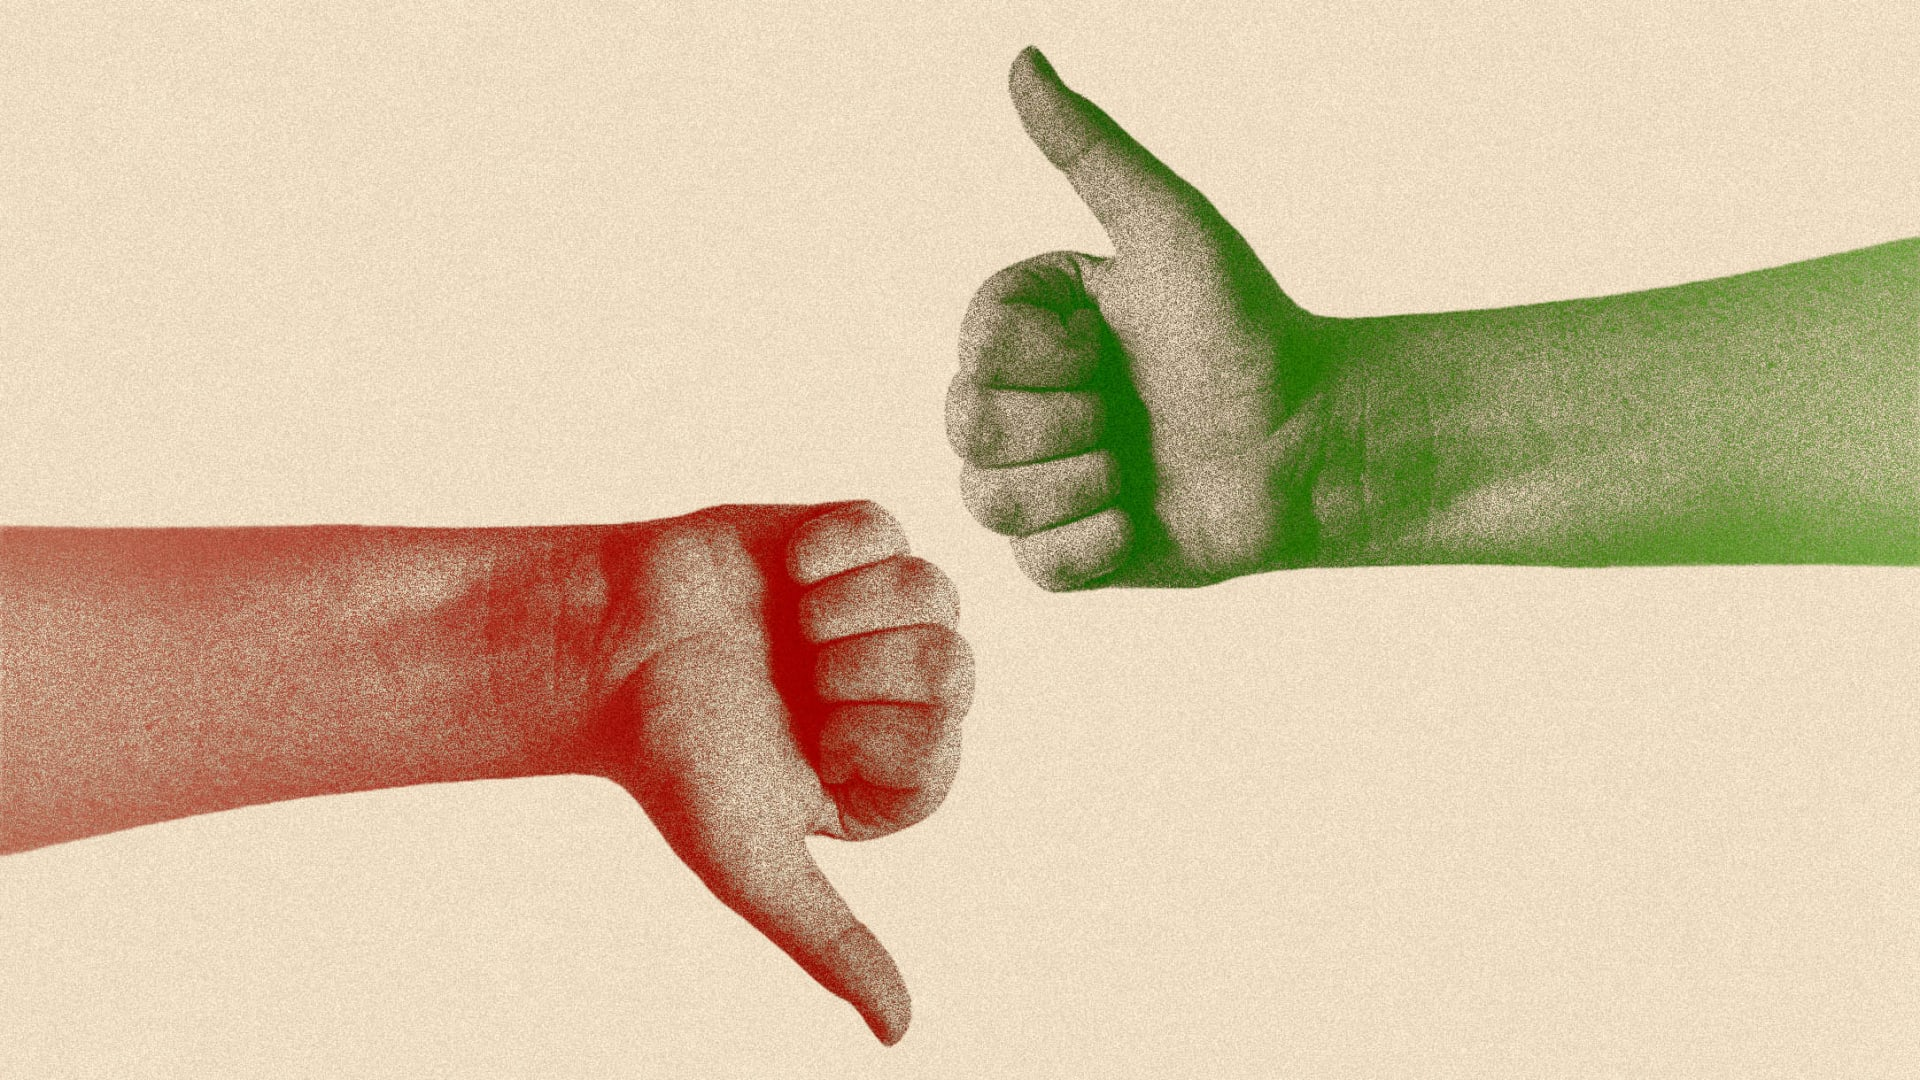 Want to Improve Your Company? Don't Say Yes to Every Project